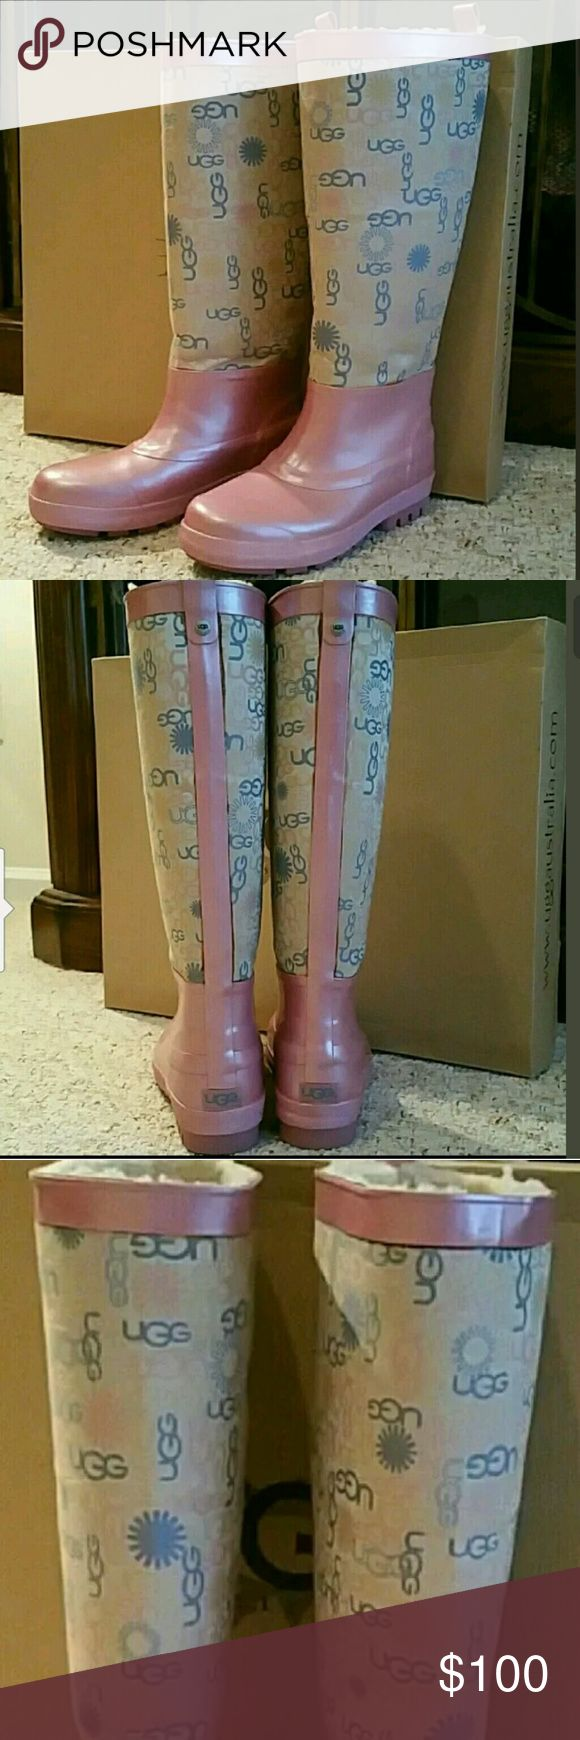 UGG Wallingford Pink Tan Rainboots Size 6 UGG Wallingford Pink Rainboots Size 6   A Wellington inspired rain boot that is fully lined in quality genuine sheepskin. The molded rubber outsole provides traction while braving the elements. This first ever sheepskin-lined rain boot will keep you warm and dry.   Pink and Beige in color  UGG signature logo pattern  Waterproof  100 % Authentic  NEW in box UGG Shoes Winter & Rain Boots